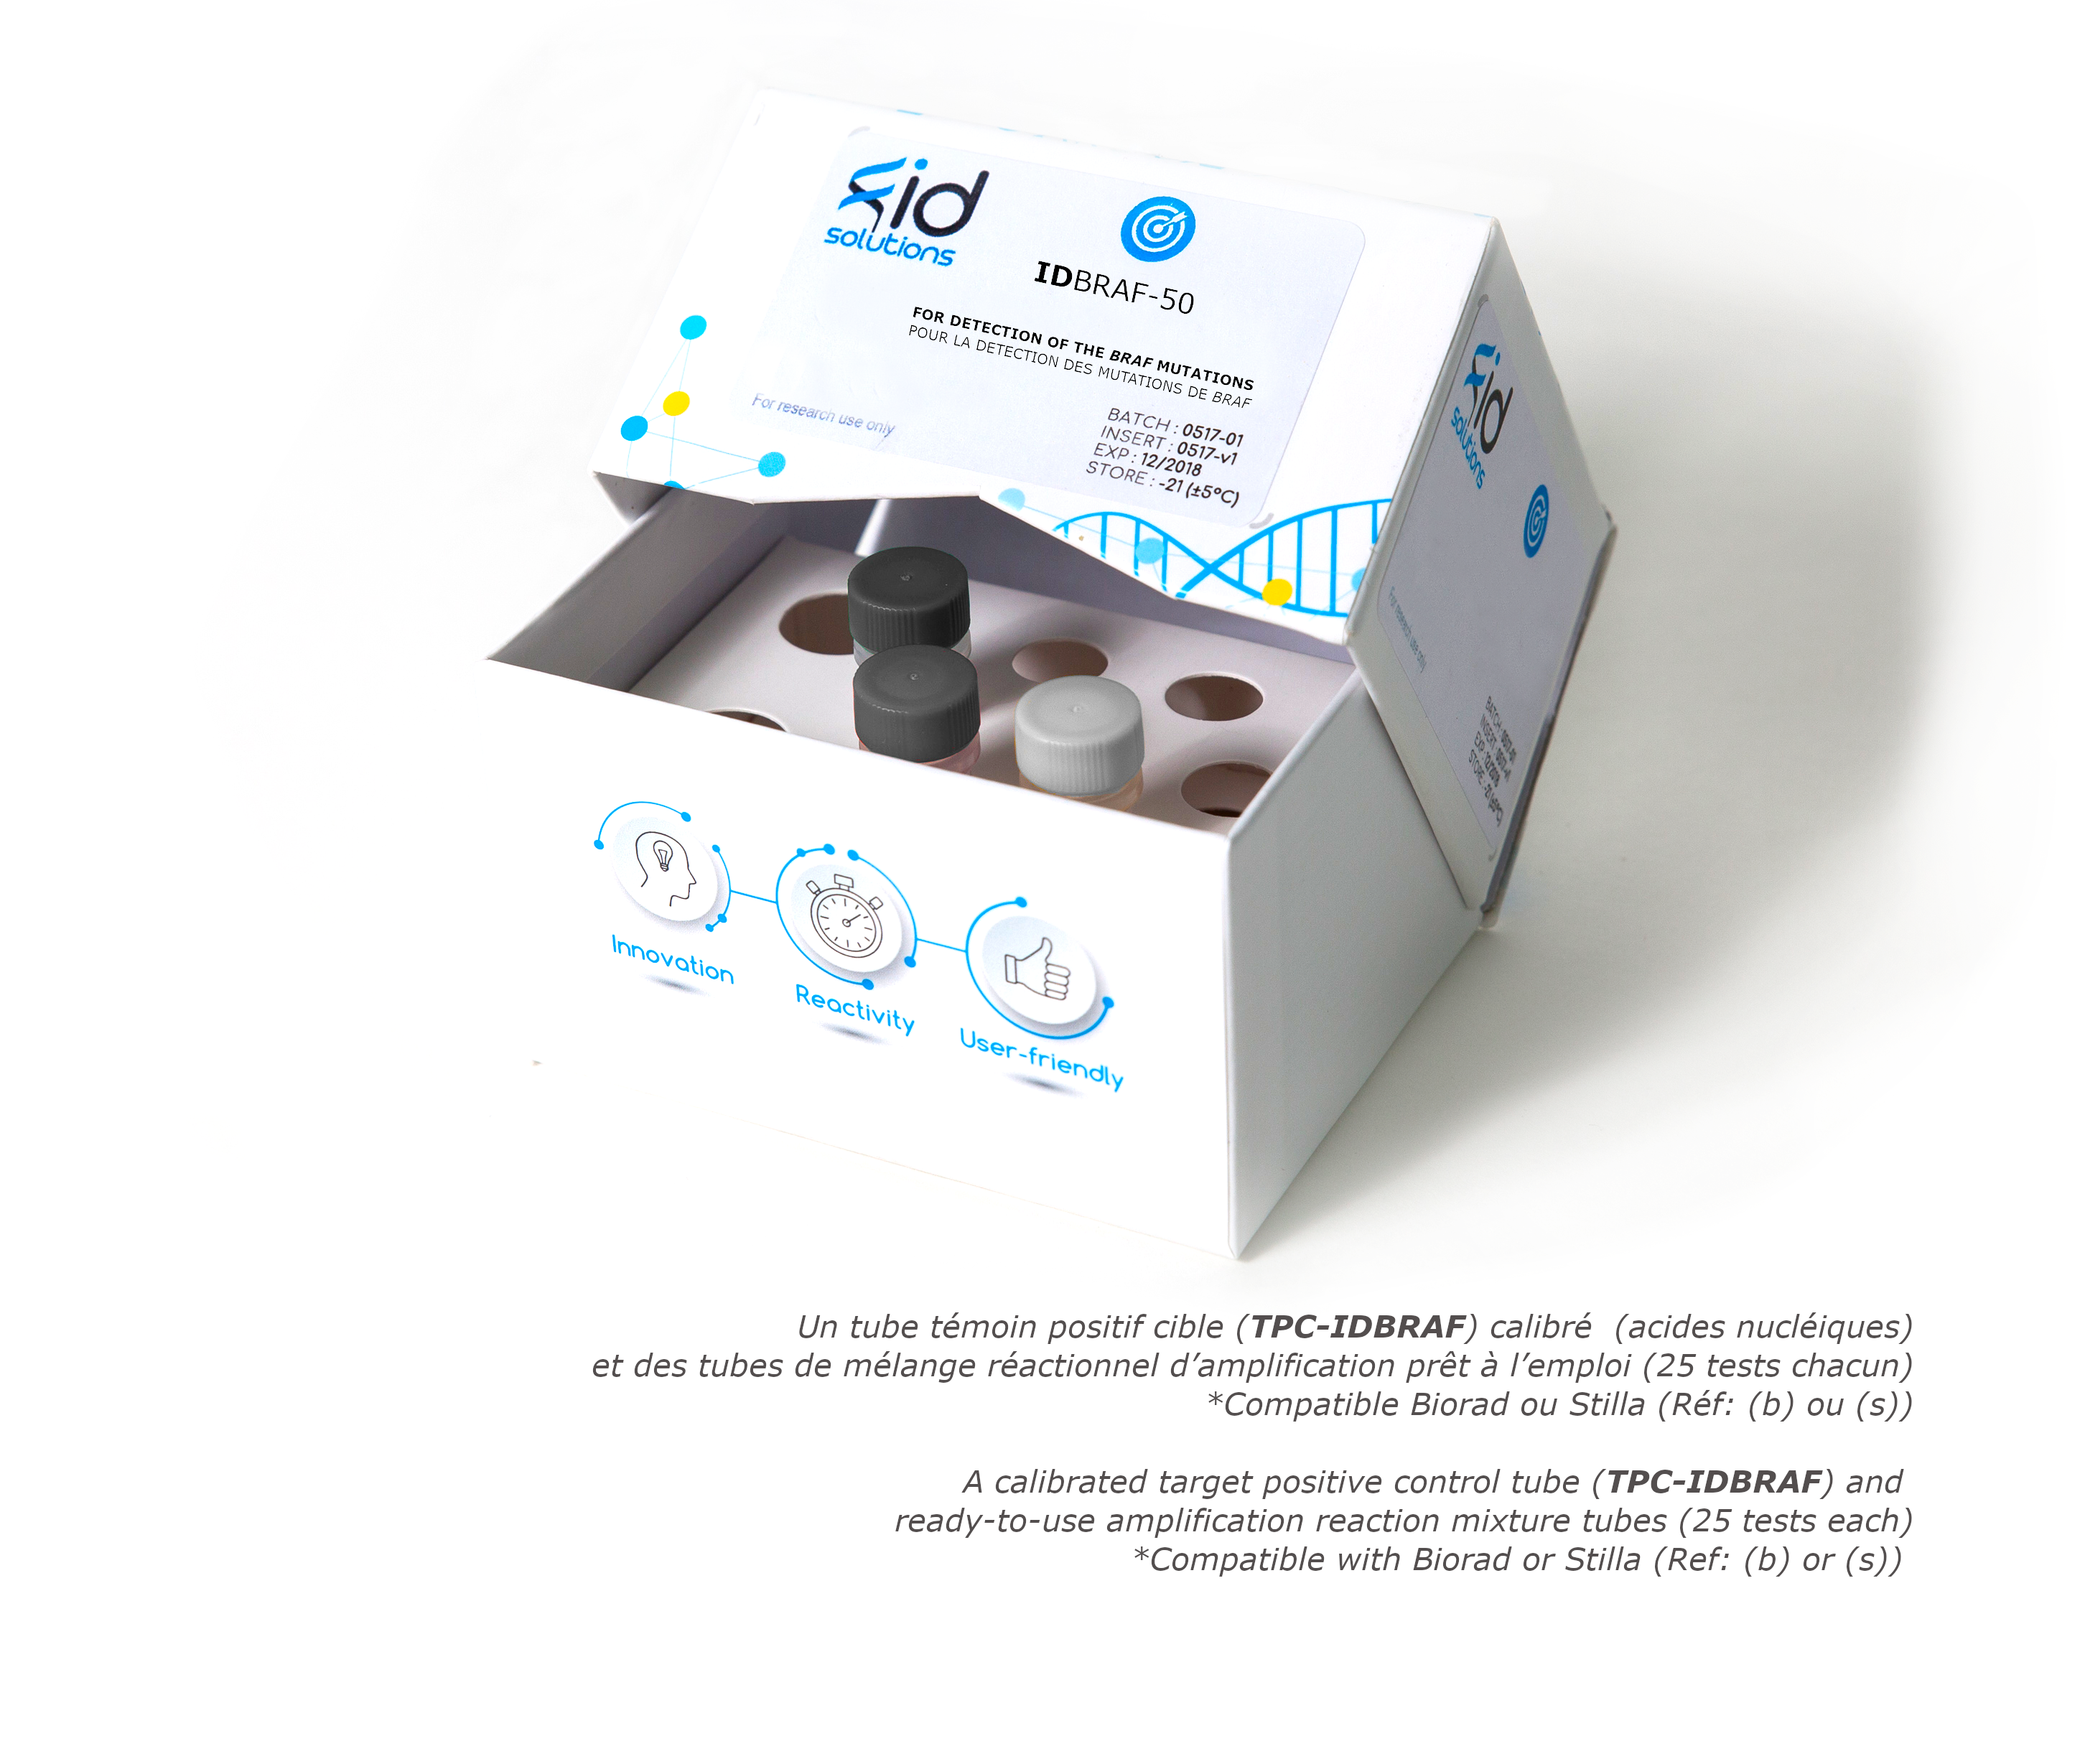 IDBRAF - Circulating tumor DNA BRAF Mutation Detection Kit based on digital PCR